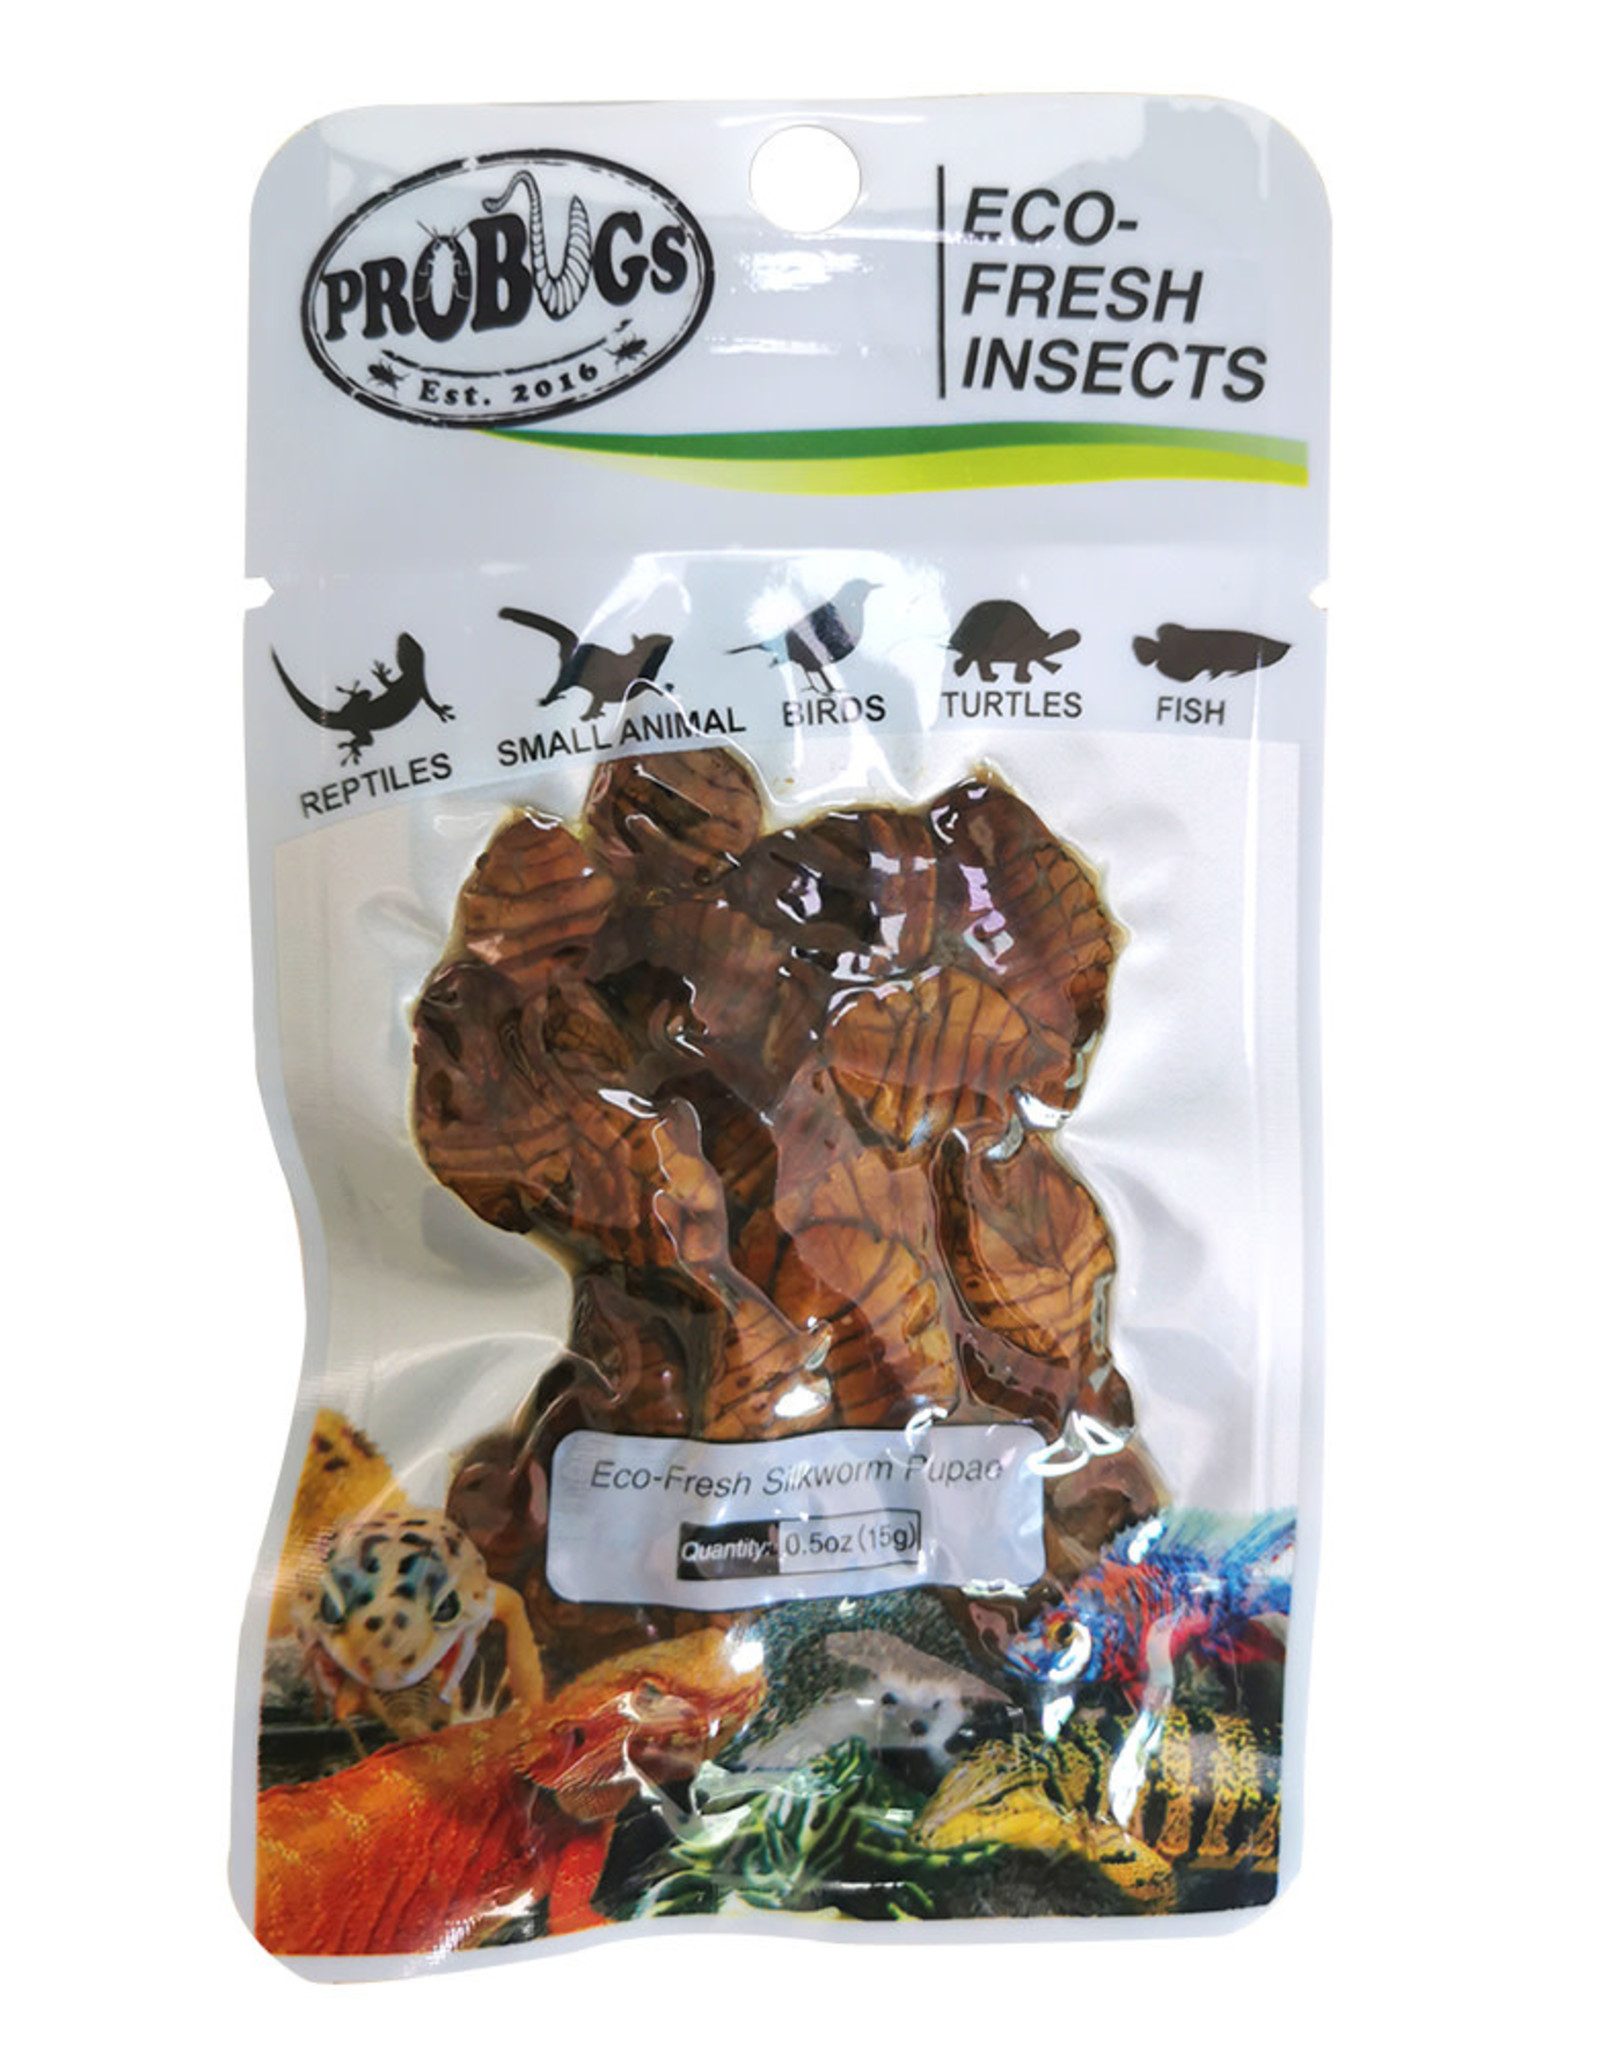 Probugs Silkworm Pupae package